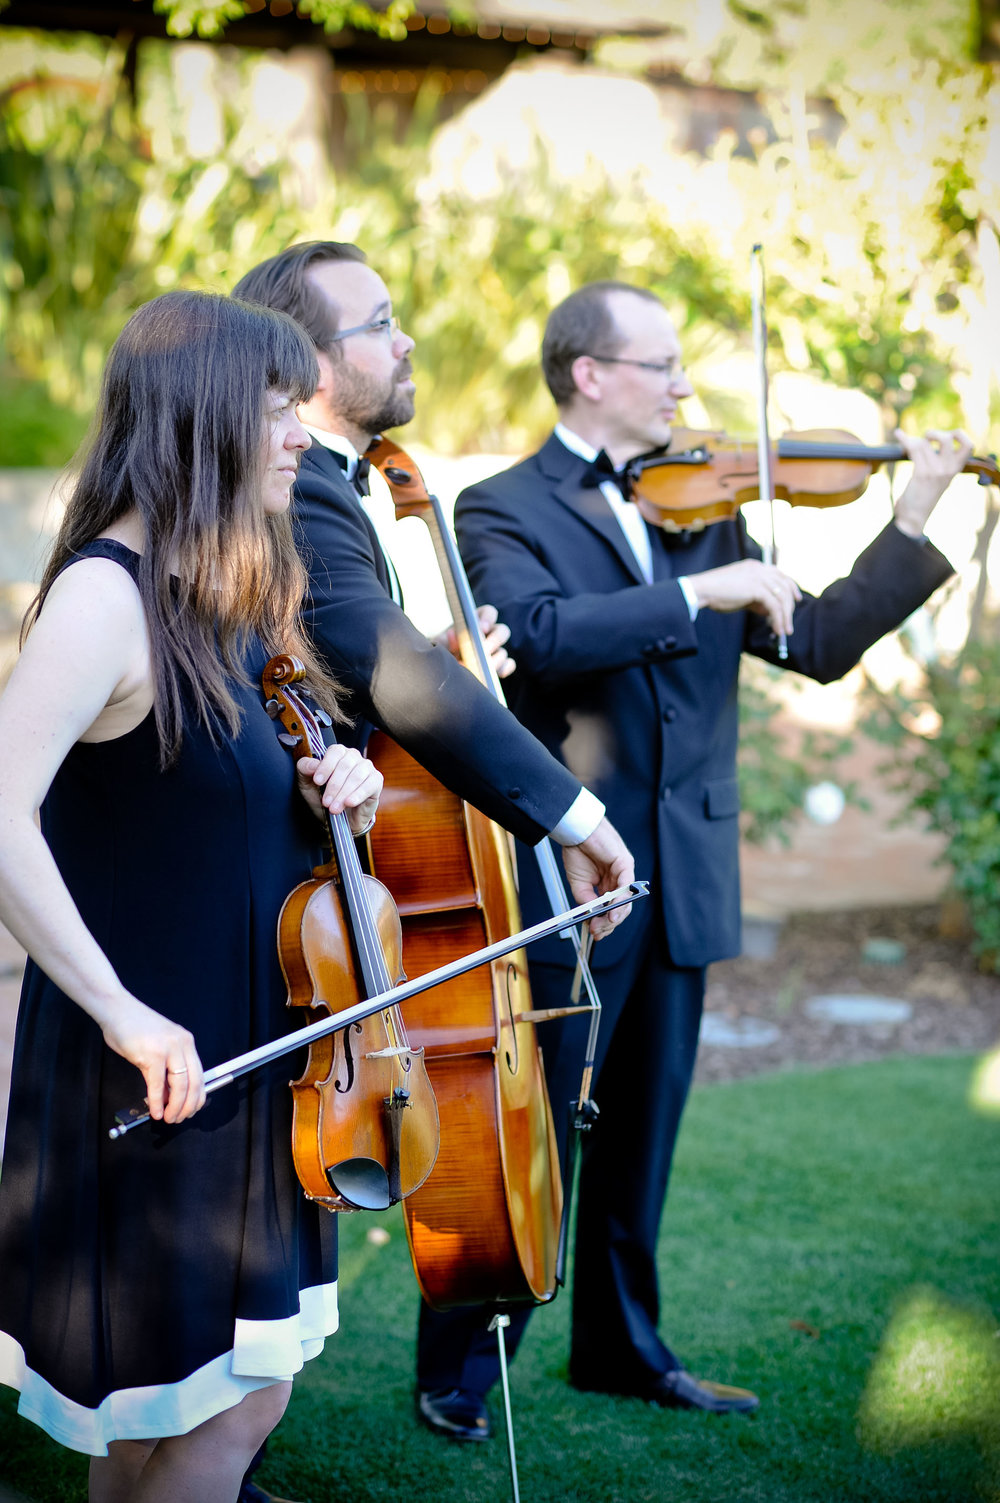 Trio Maxim performs at Vintage Estates in Yountville, CA